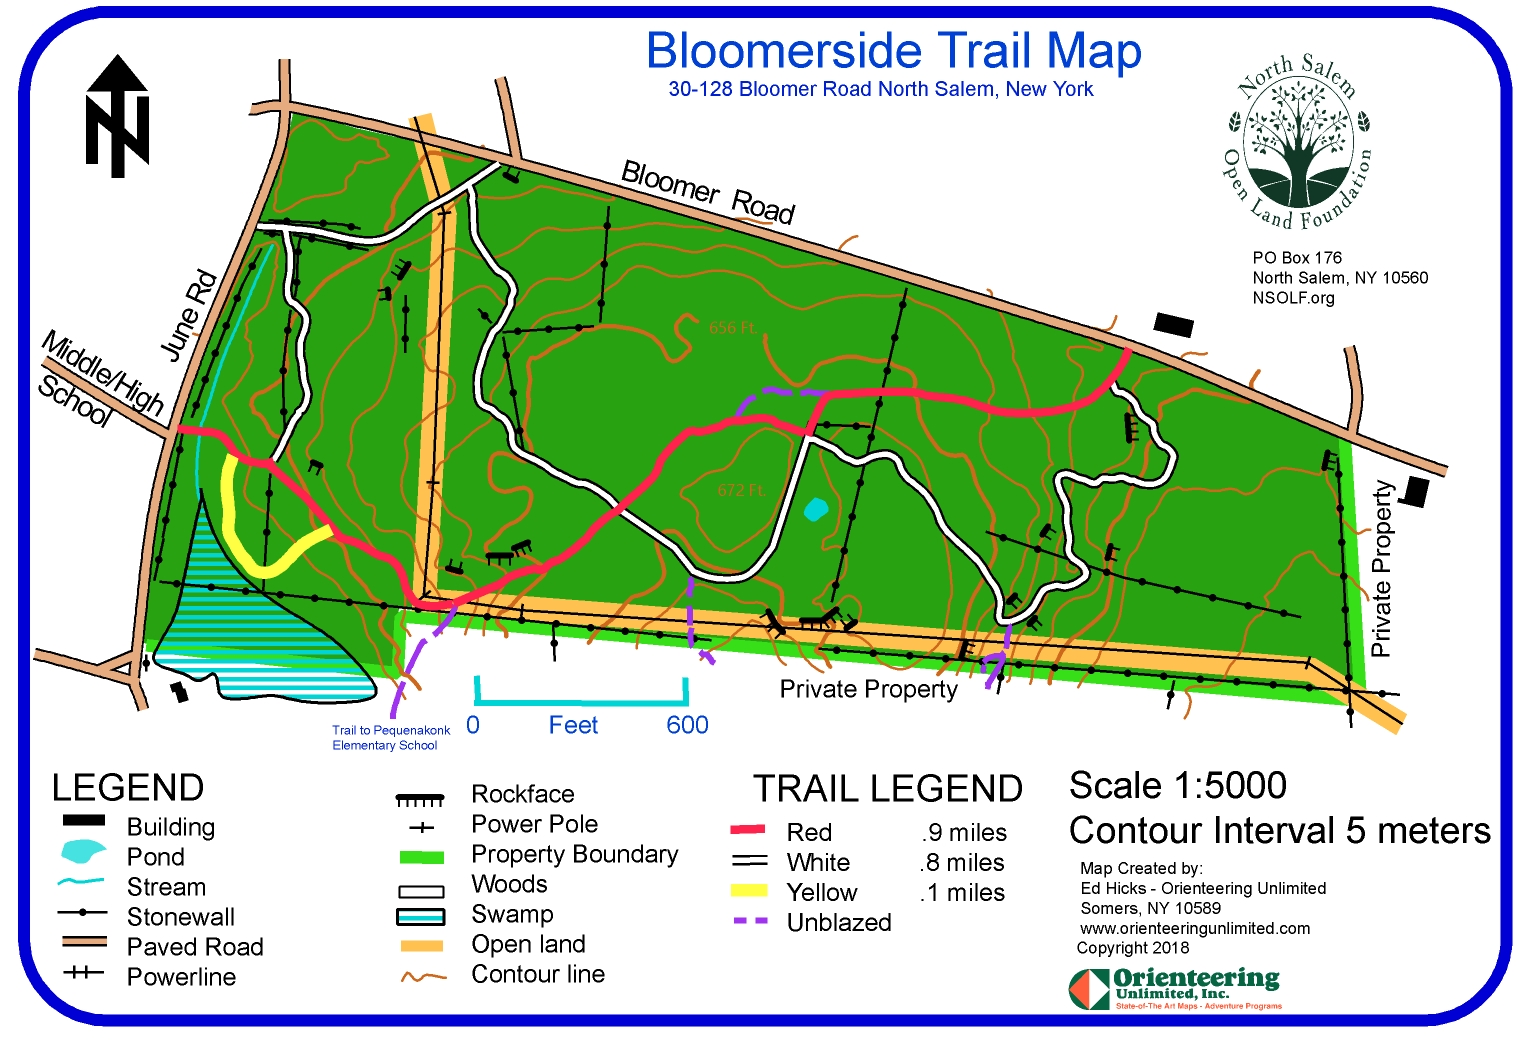 Bloomerside 2019 - North Salem Open Land Foundation - Avenza ... on berkshire county road map, village road map, keizer oregon road map, south kingstown road map, covington county road map, las marias road map, bombay road map, biloxi road map, rock hill road map, yorktown road map, loris road map, seaside road map, saint john road map, north shore road map, crystal lake road map, hamden road map, south milwaukee road map, edmond road map, pleasant hill road map, norman road map,